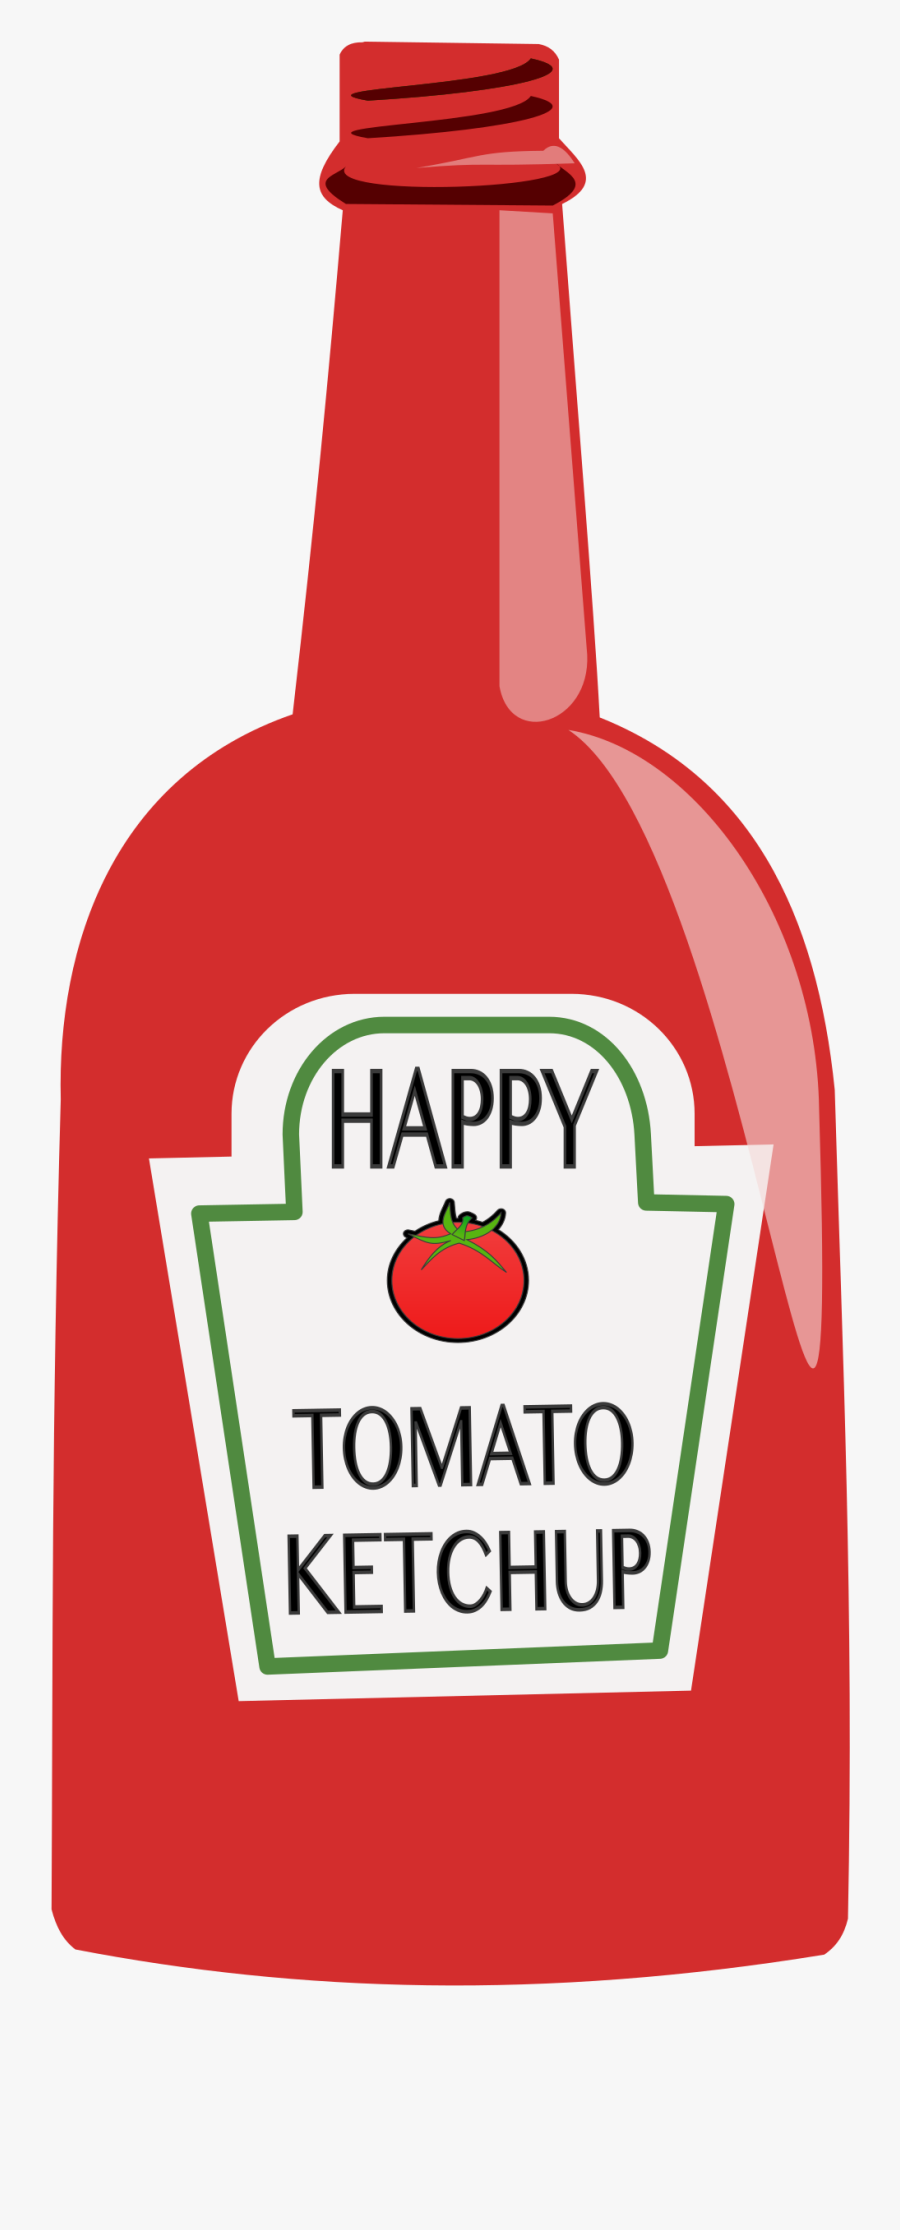 Tomato Big Image Png - Ketchup Clipart Png, Transparent Clipart